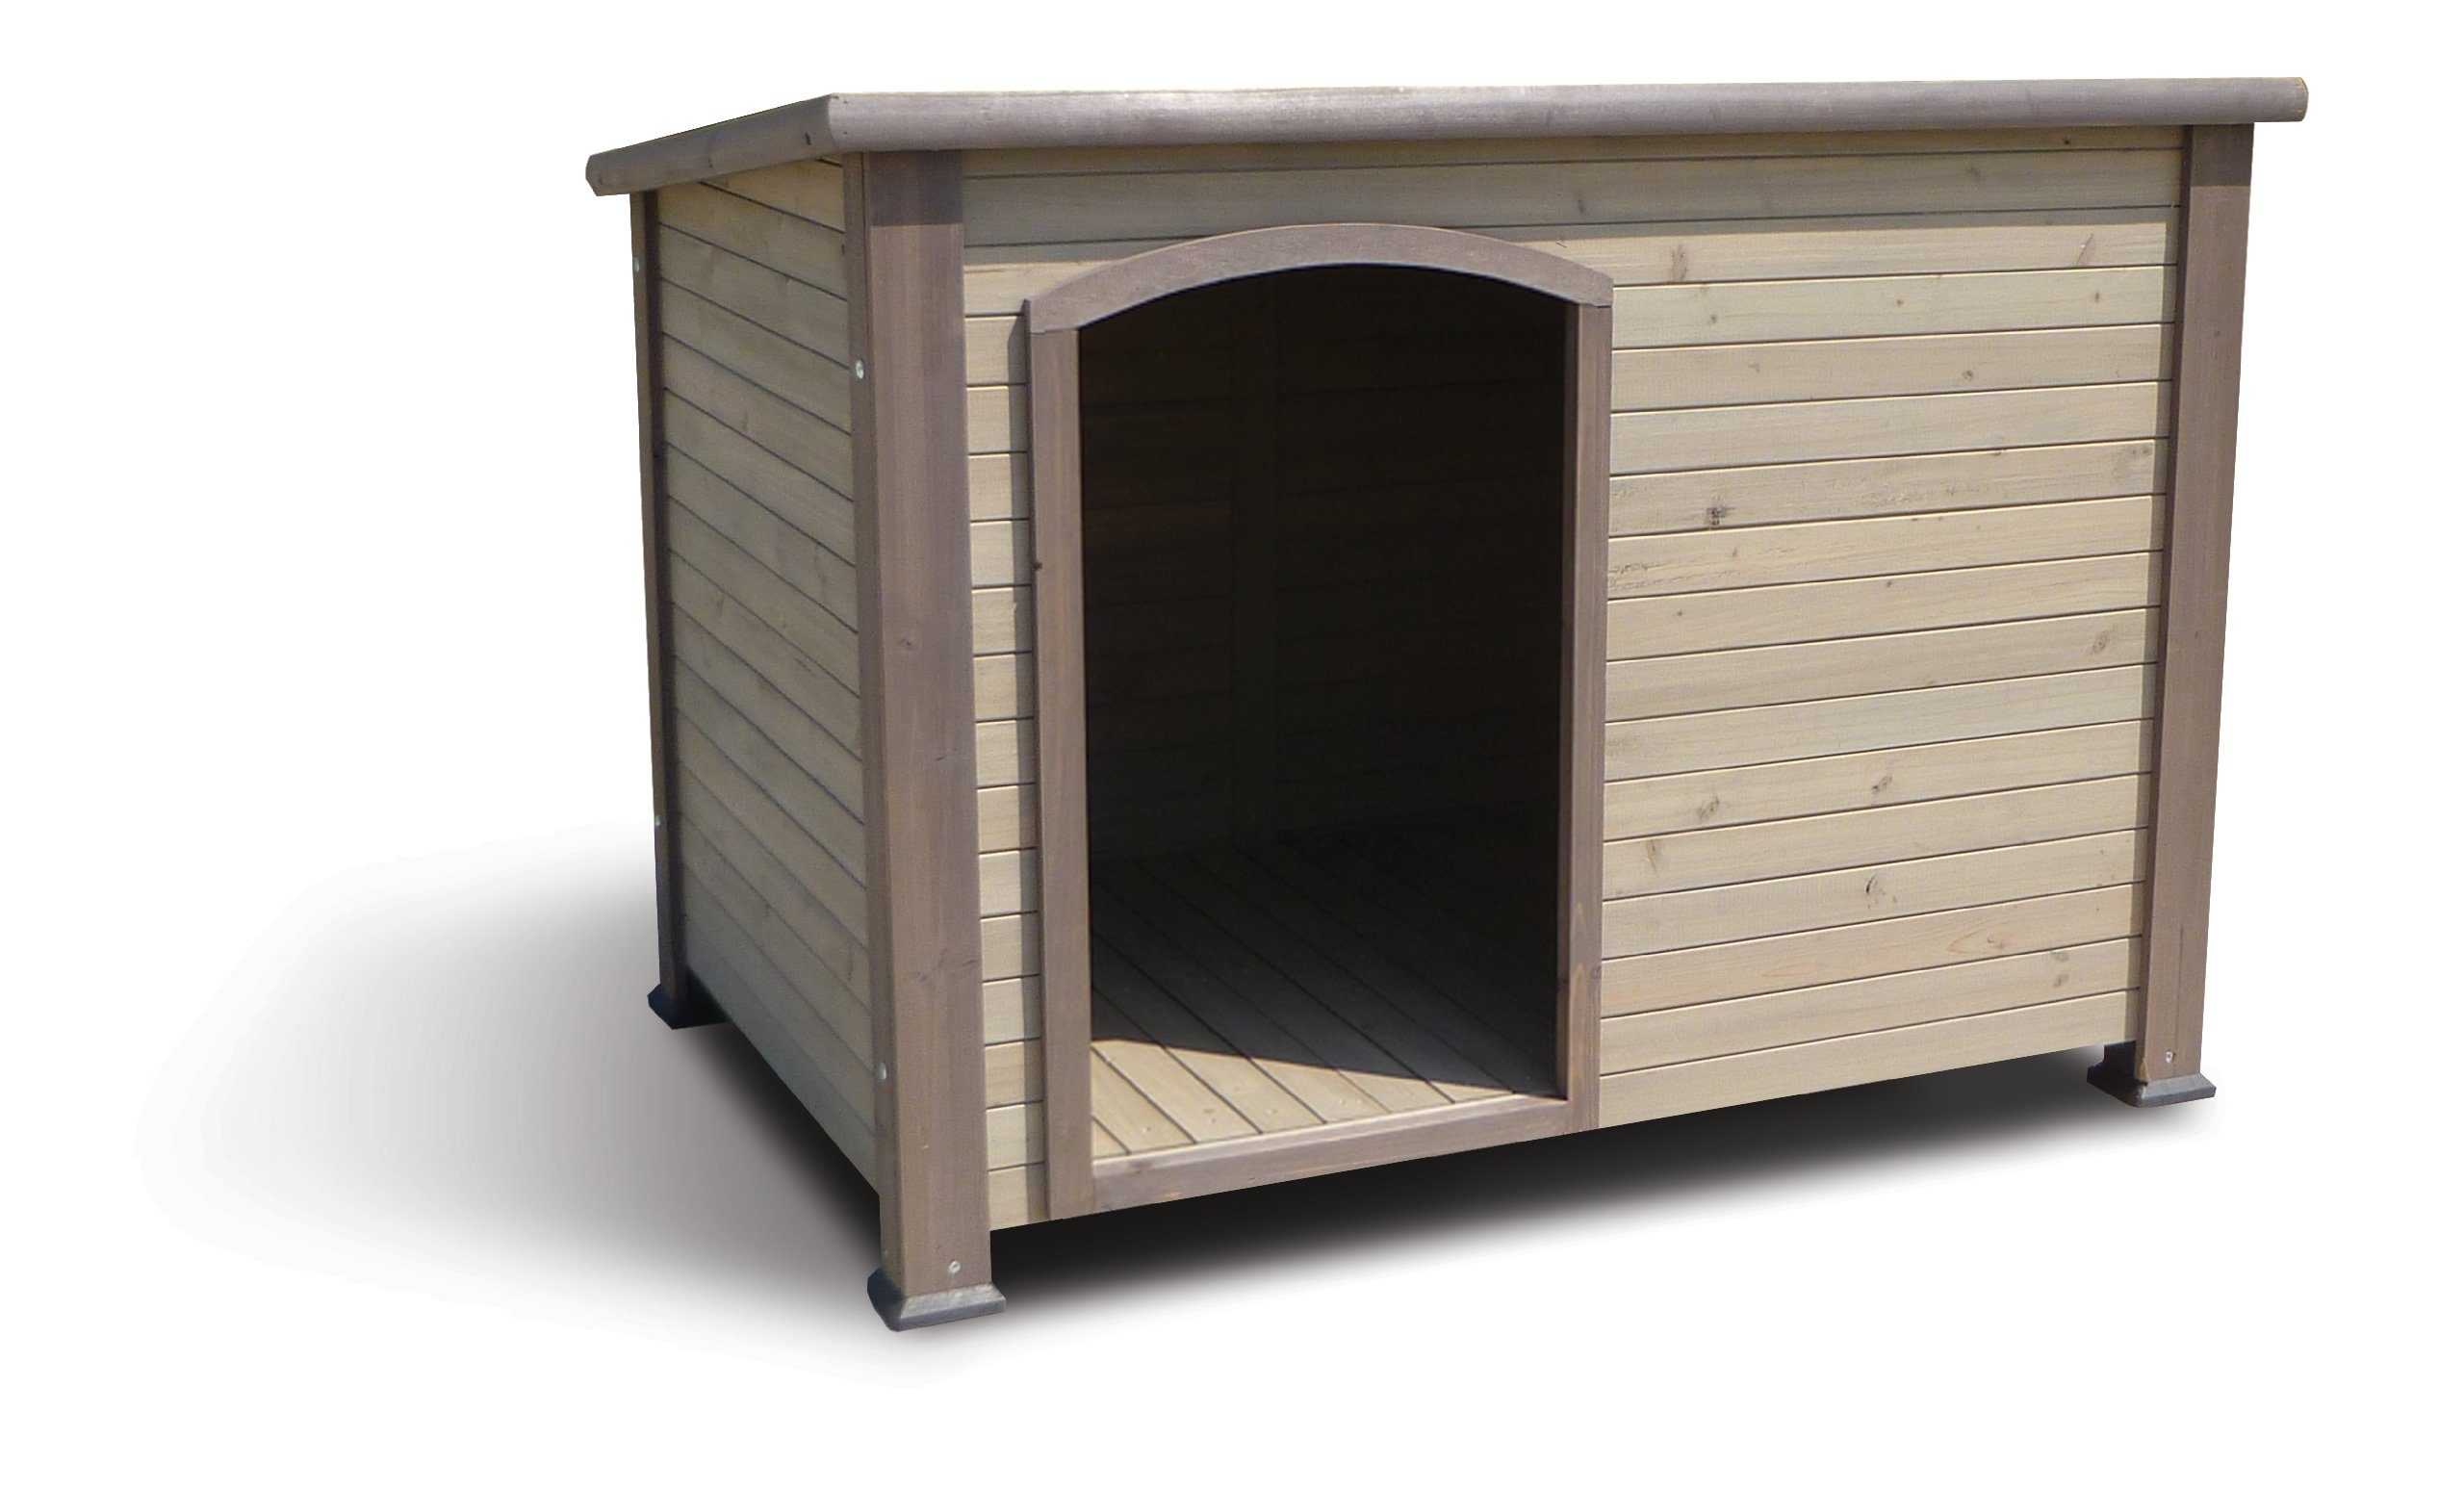 Precision Pet Extreme Log Cabin Large 45.5 in. x 33 in. x 32.8 in. Taupe by Petmate